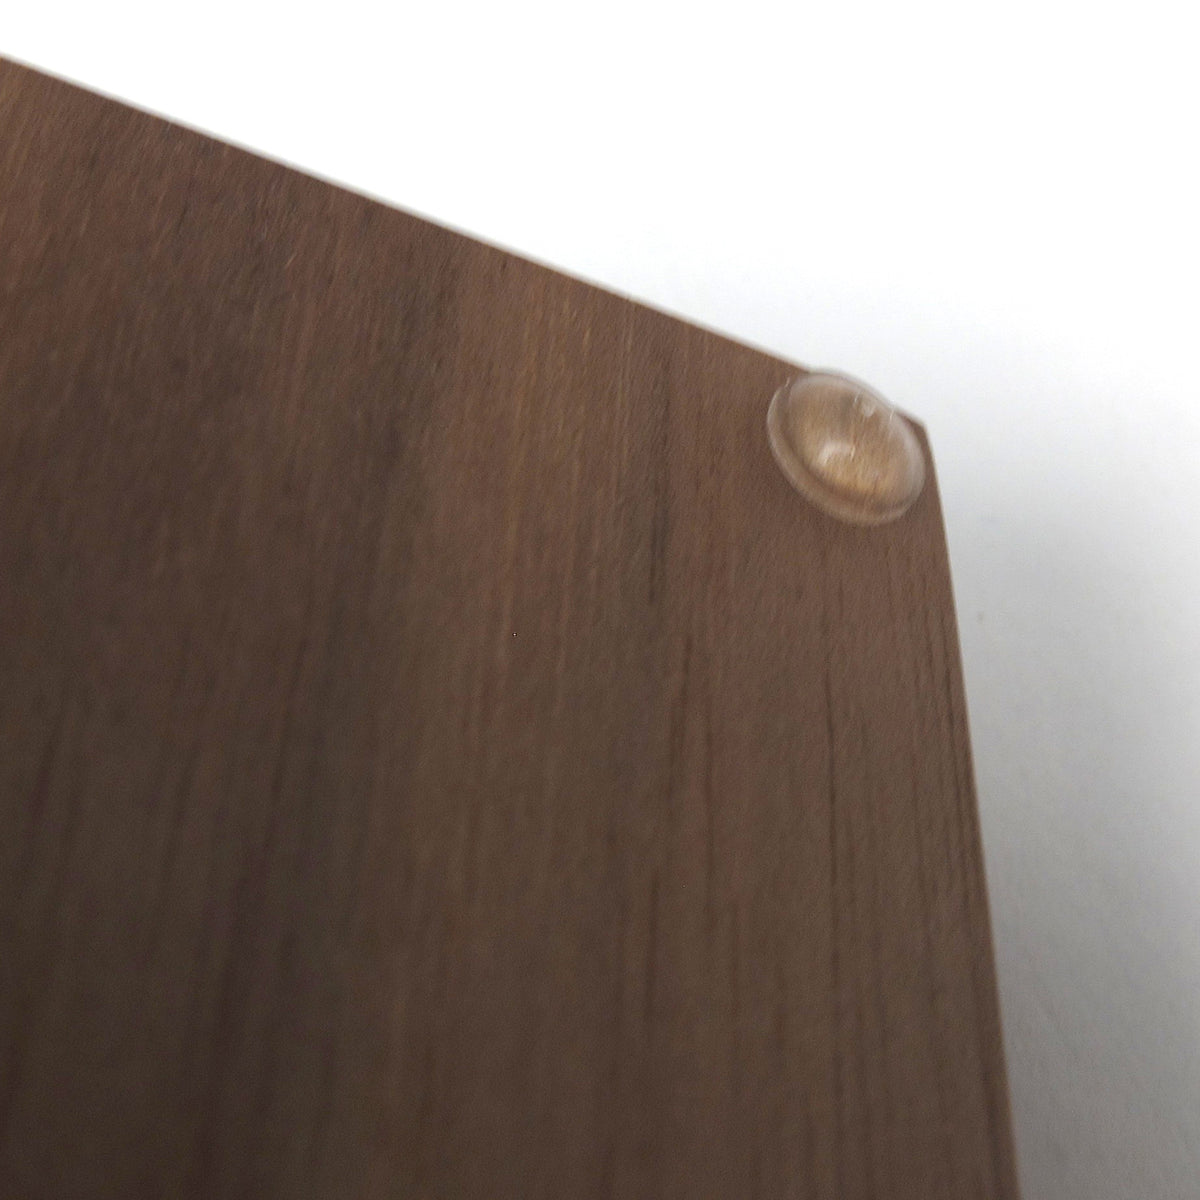 Nicole David: Now Playing Record Stand - Walnut